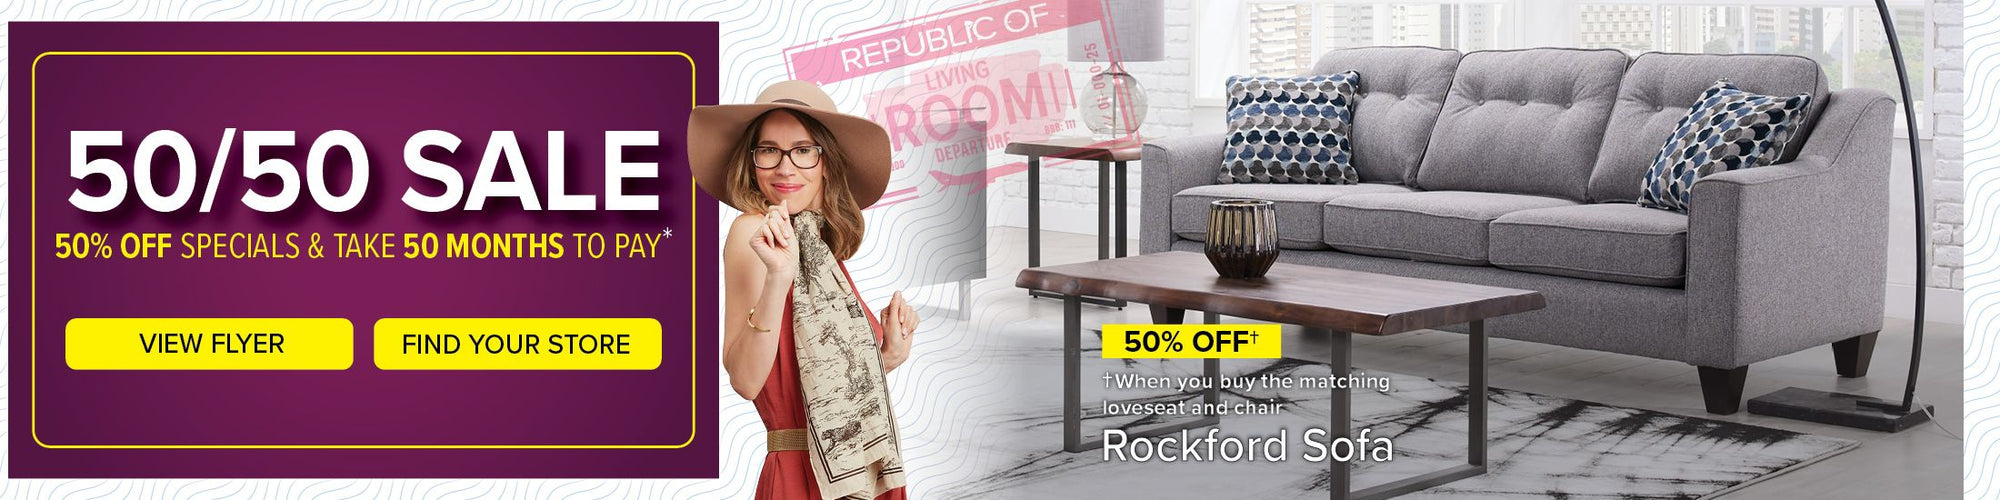 On now for a limited time only. 50/50 Sale. 50% Off specials & take 50 months to pay. View Flyer. Find Your Store. 50% Off. When you buy the matching loveseat and chair. Rockford Sofa